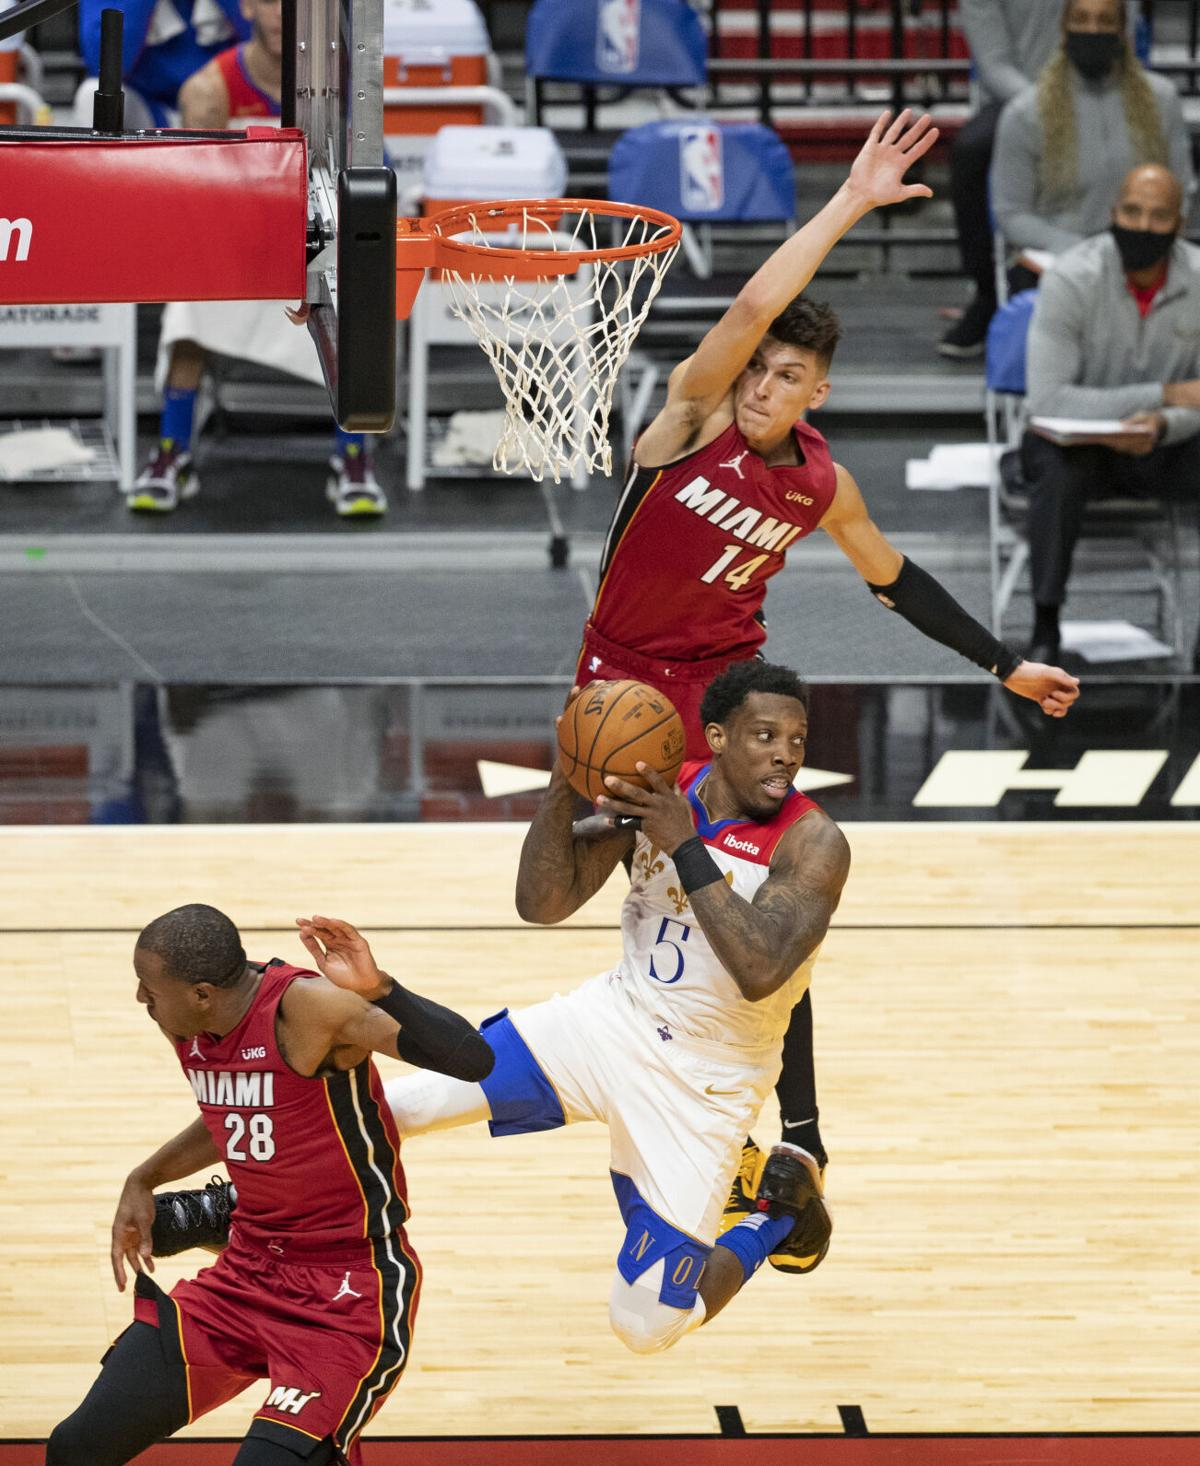 New Orleans Pelicans guard Eric Bledsoe looks to pass against Miami Heat guard Tyler Herro in the second quarter of a NBA basketball game on Christmas Day at the AmericanAirlines Arena on Friday, December 25, 2020.